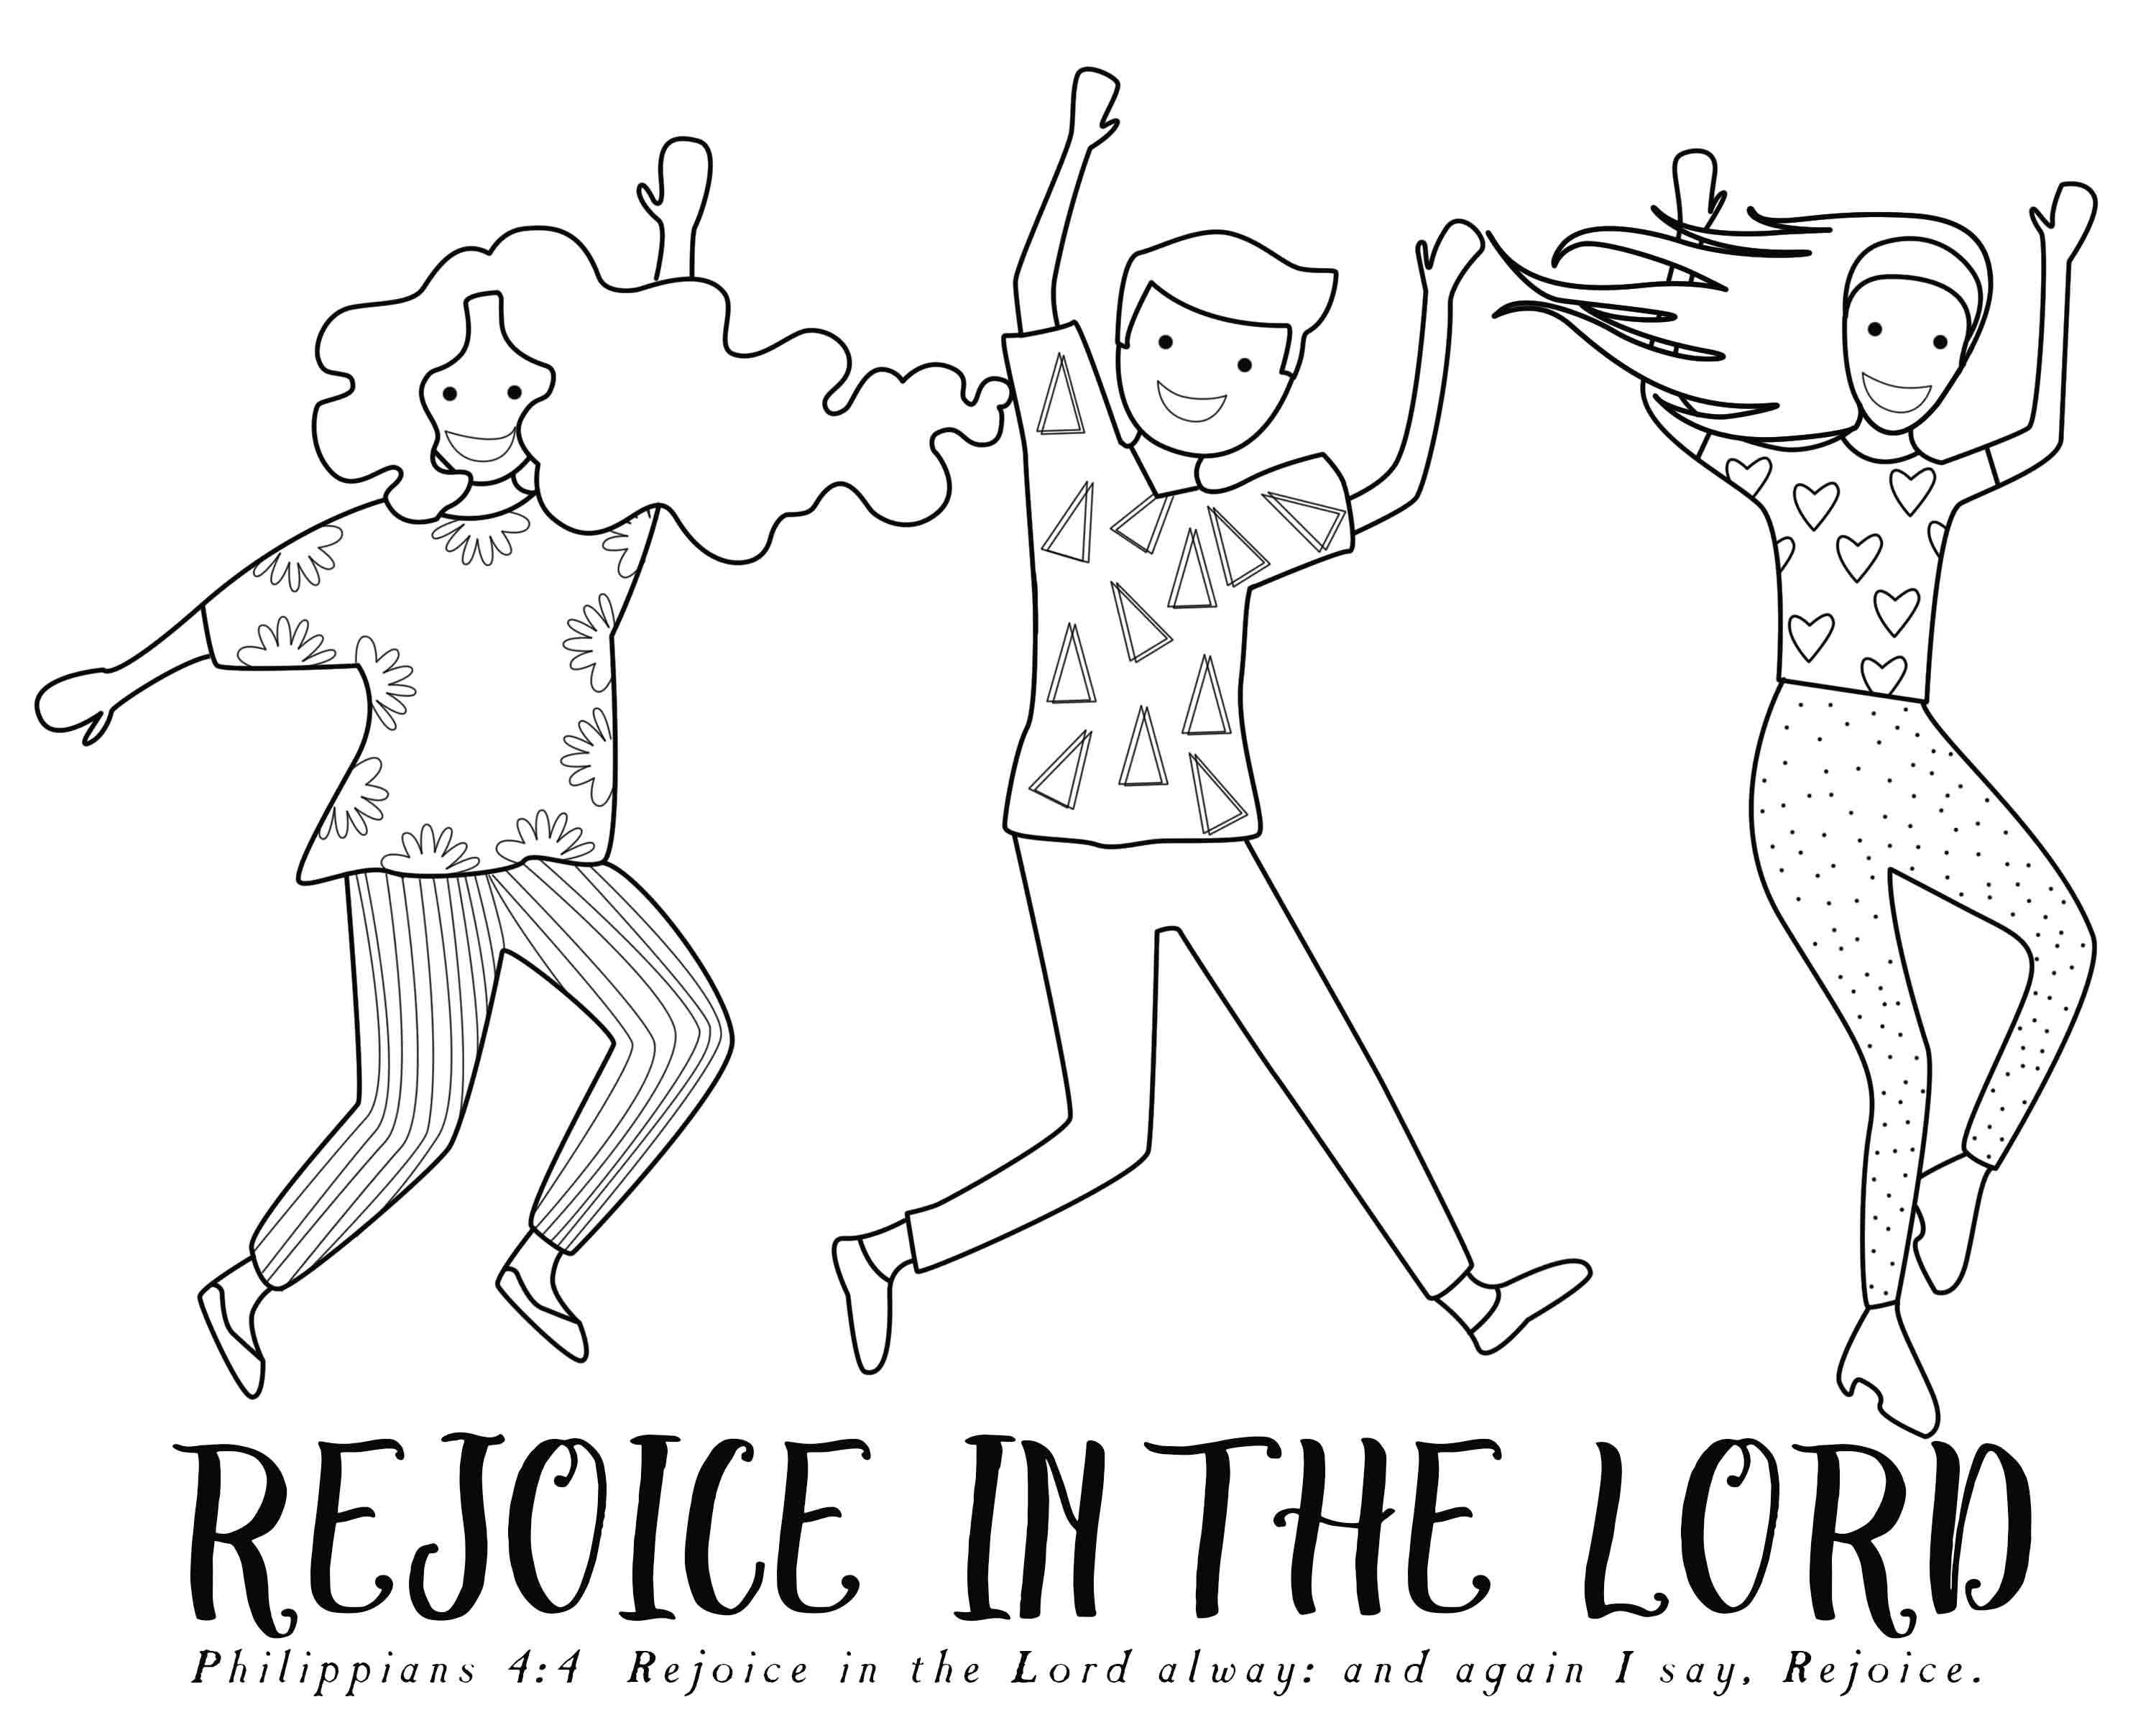 philippians 4 8 coloring page 32 philippians 48 coloring pages mihrimahasya coloring kids page 4 philippians 8 coloring